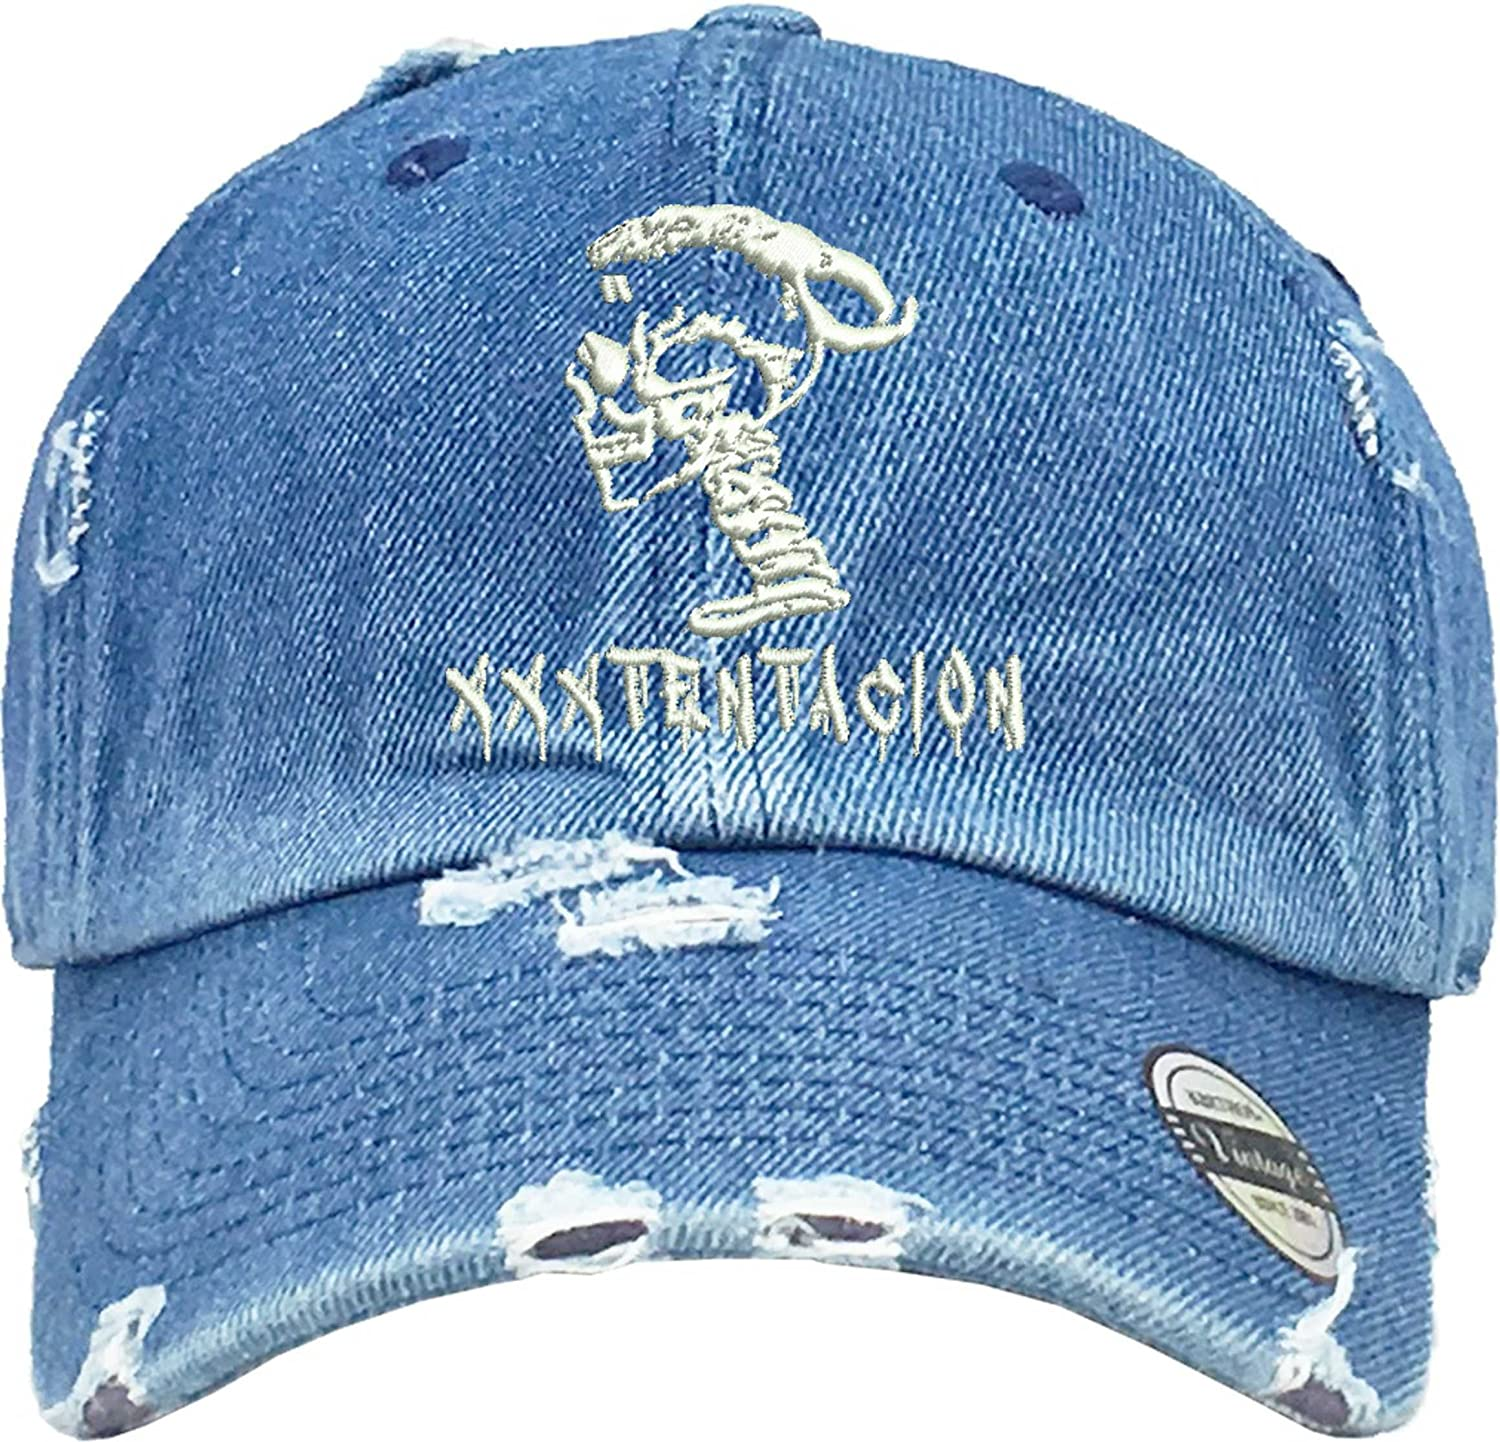 93b9e67faf4 Allntrends Adult Dad Hat Skull Xxxtentacion Embroidered Cap Cool Dad Hat  (White)  Amazon.ca  Clothing   Accessories